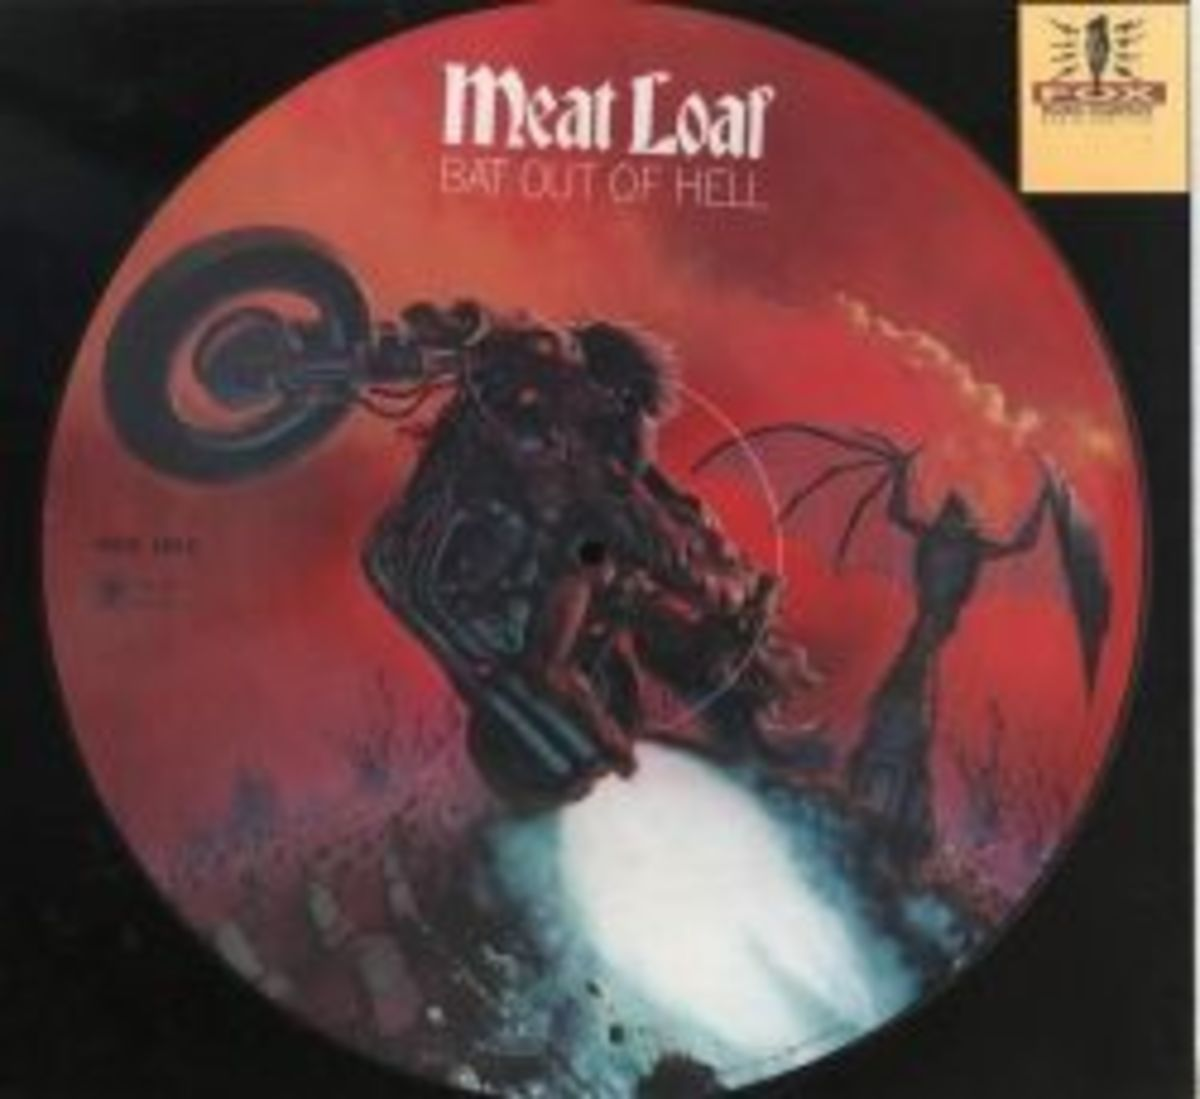 """Meatloaf """"Bat Out Of Hell"""" Cleavland International Records 34974 Picture Disc Vinyl Record"""